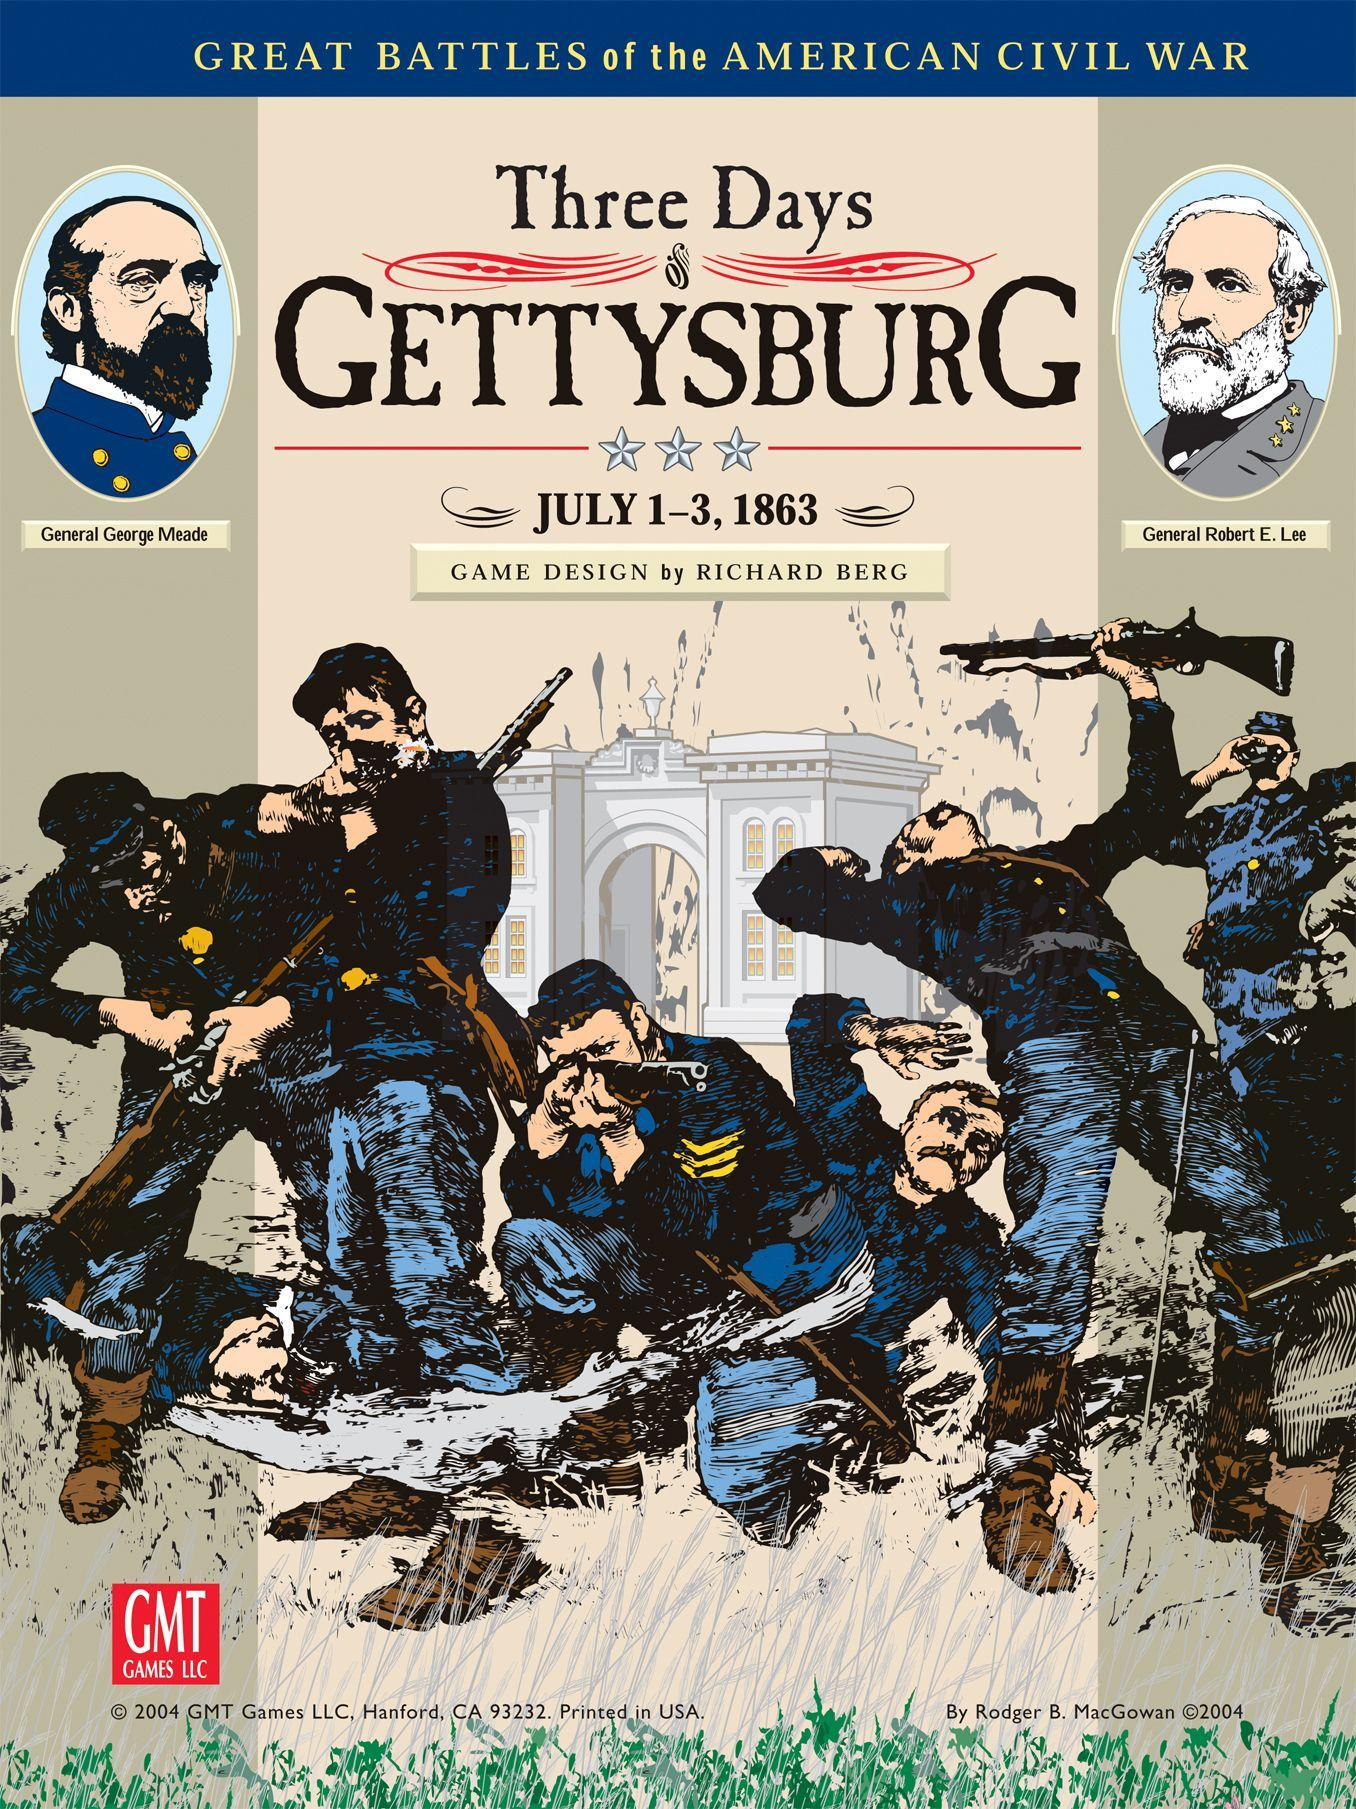 Three Days of Gettysburg (Third Edition)